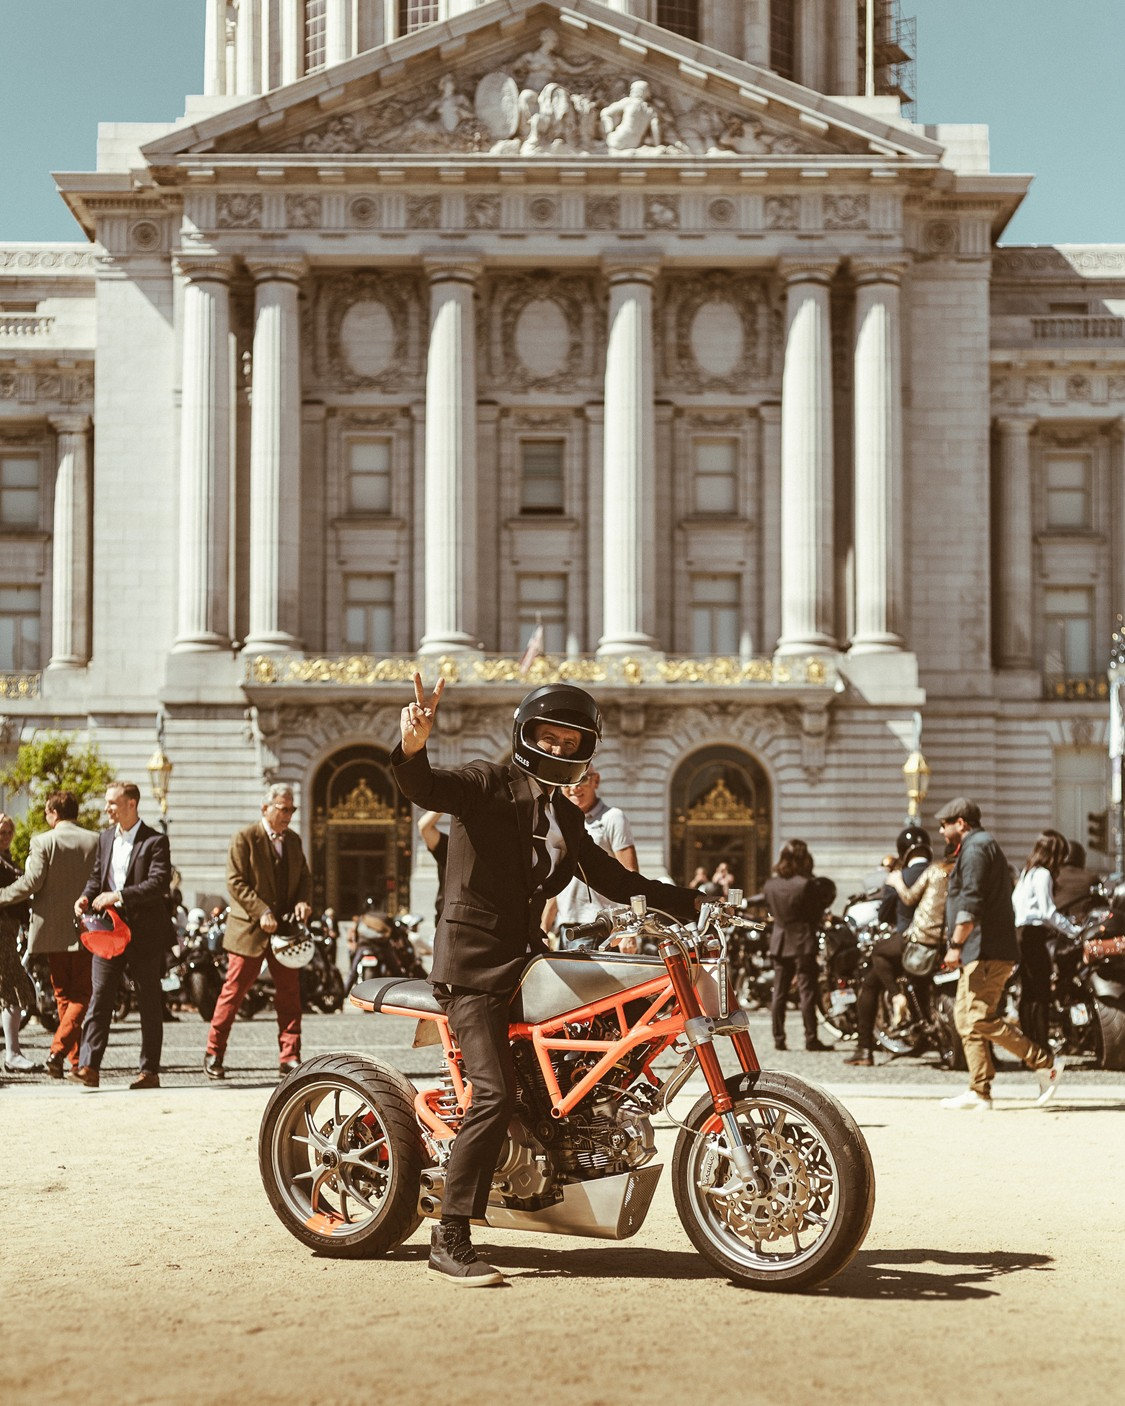 Hugo Eccles from San Francisco's Untitled Motorcycles on his Ducati for the Distinguished Gentleman's Ride